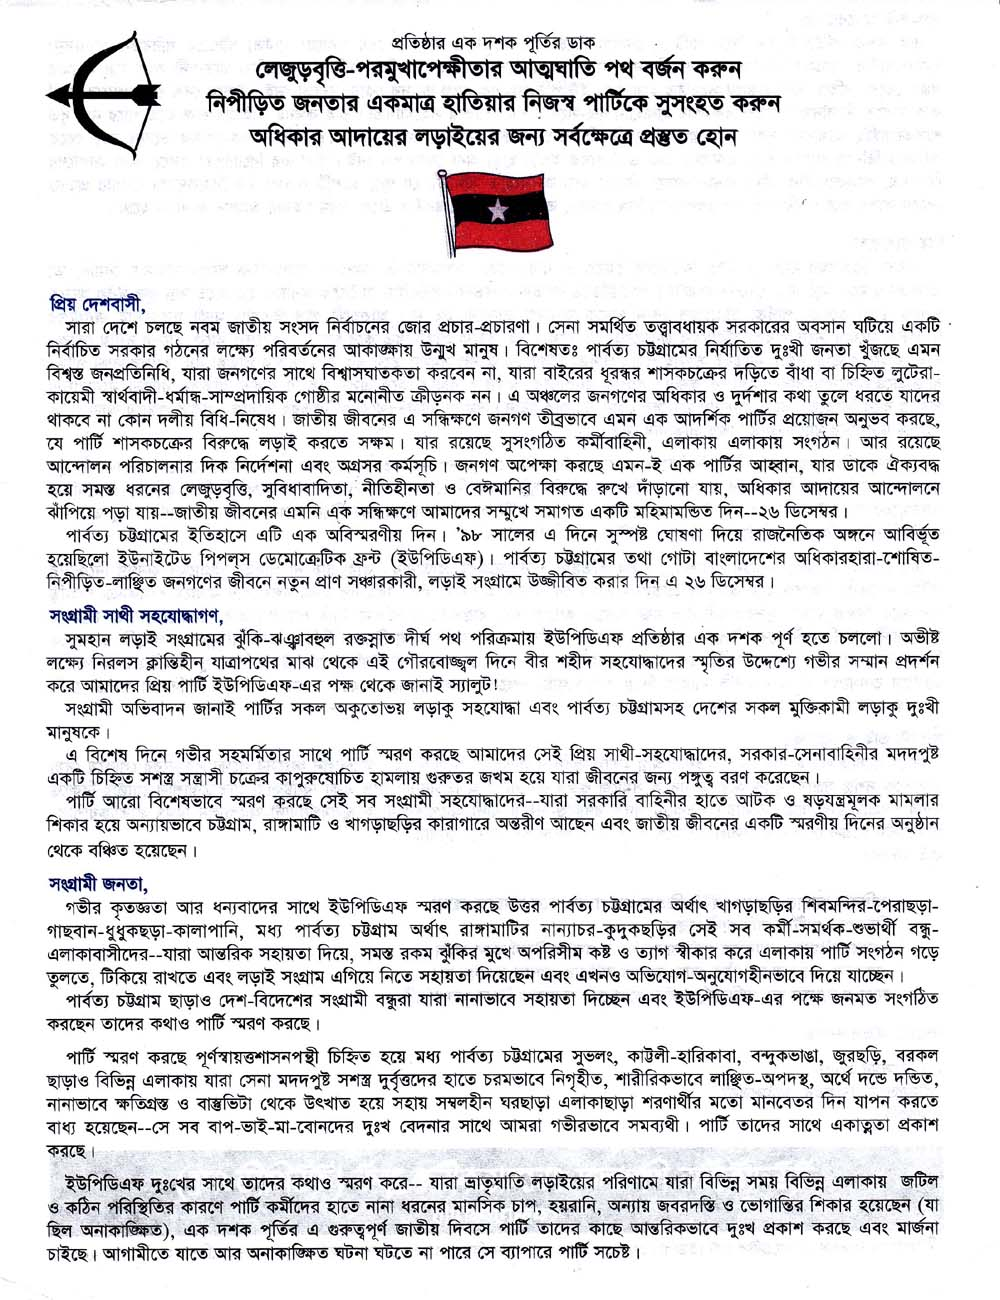 10. Leaflet on 10th founding anniversary, page-1